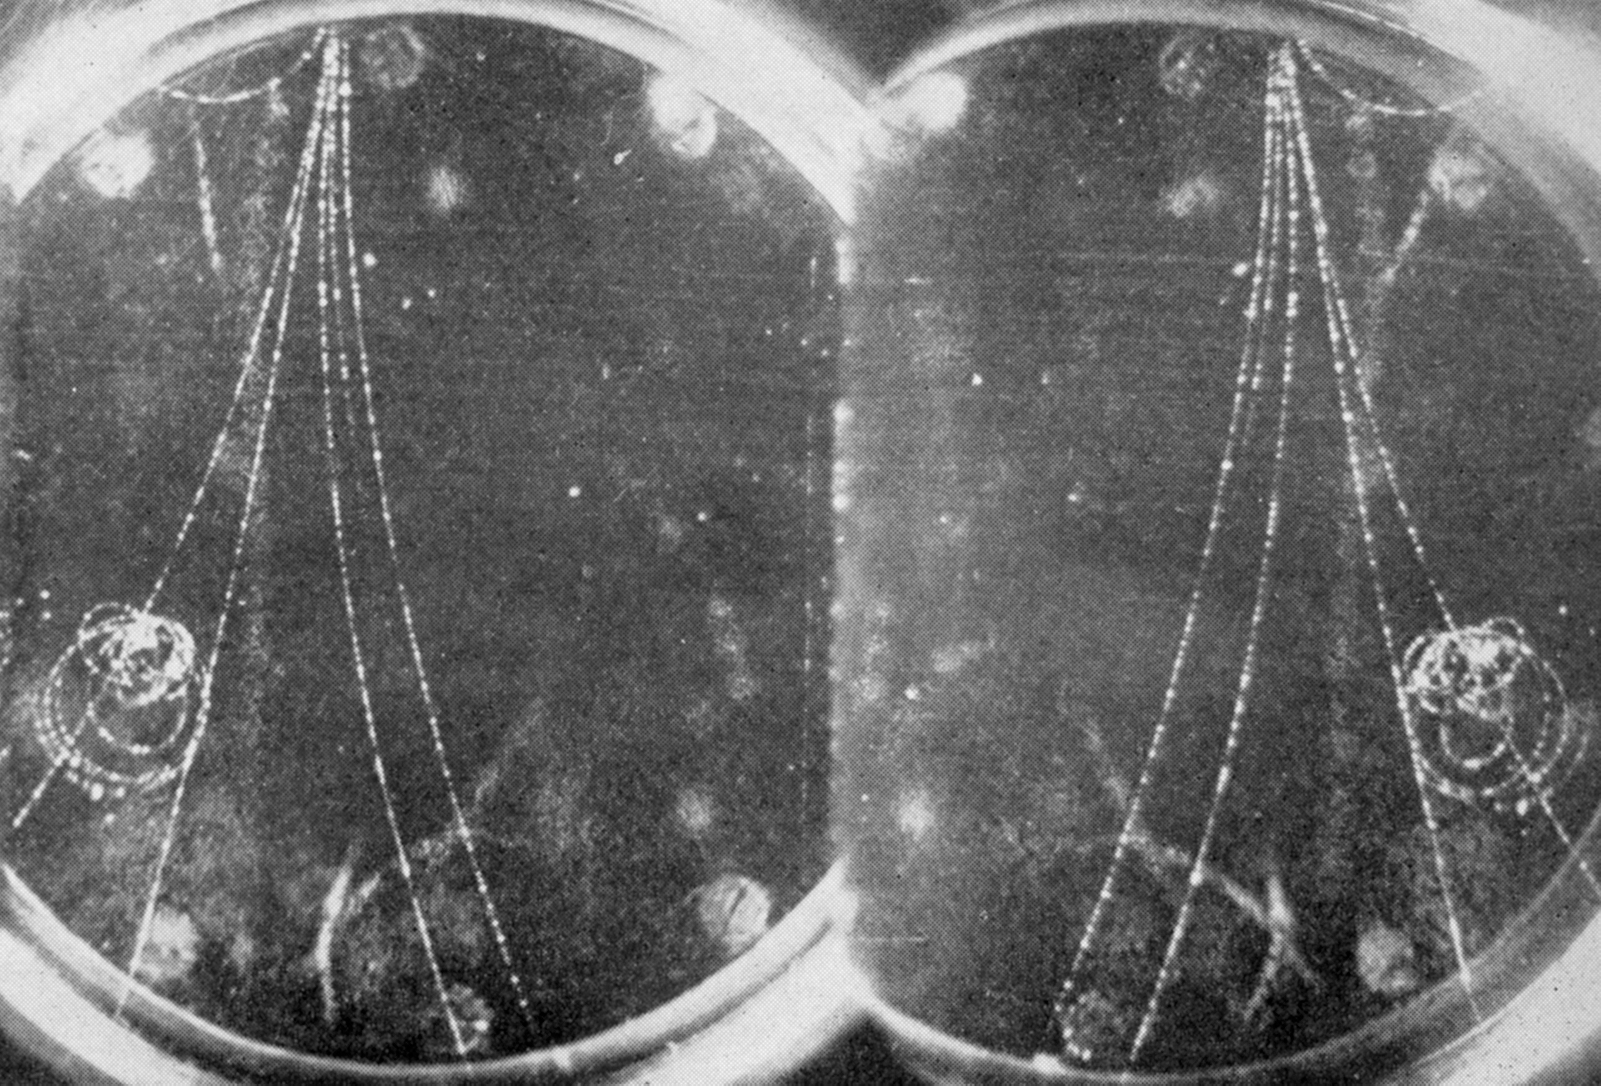 Bubble chamber image showing traces of subatomic particles